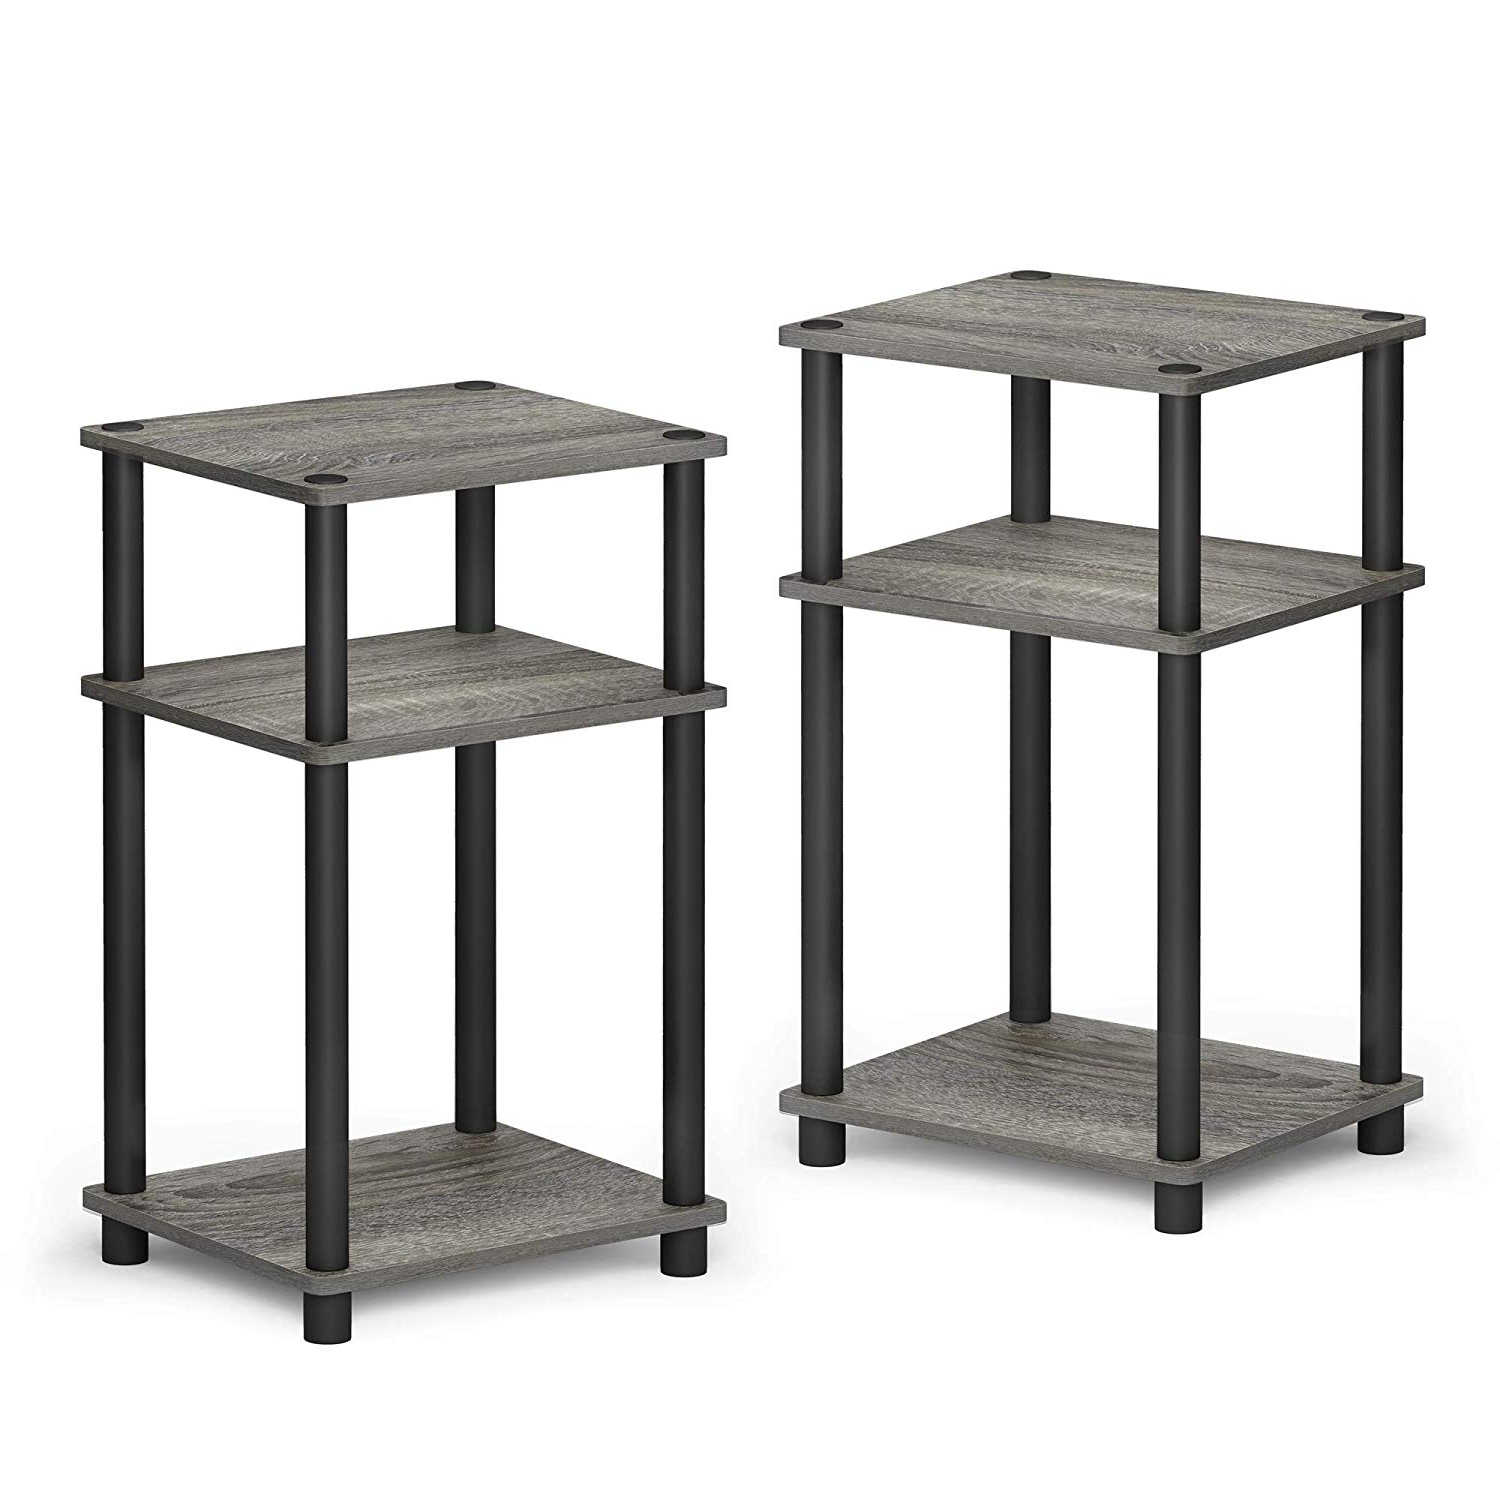 Most Recently Released Furinno Just 3 Tier Turn N Tube 2 Pack End Table, French Oak Grey/black In Acacia Dining Tables With Black Rocket Legs (View 27 of 30)